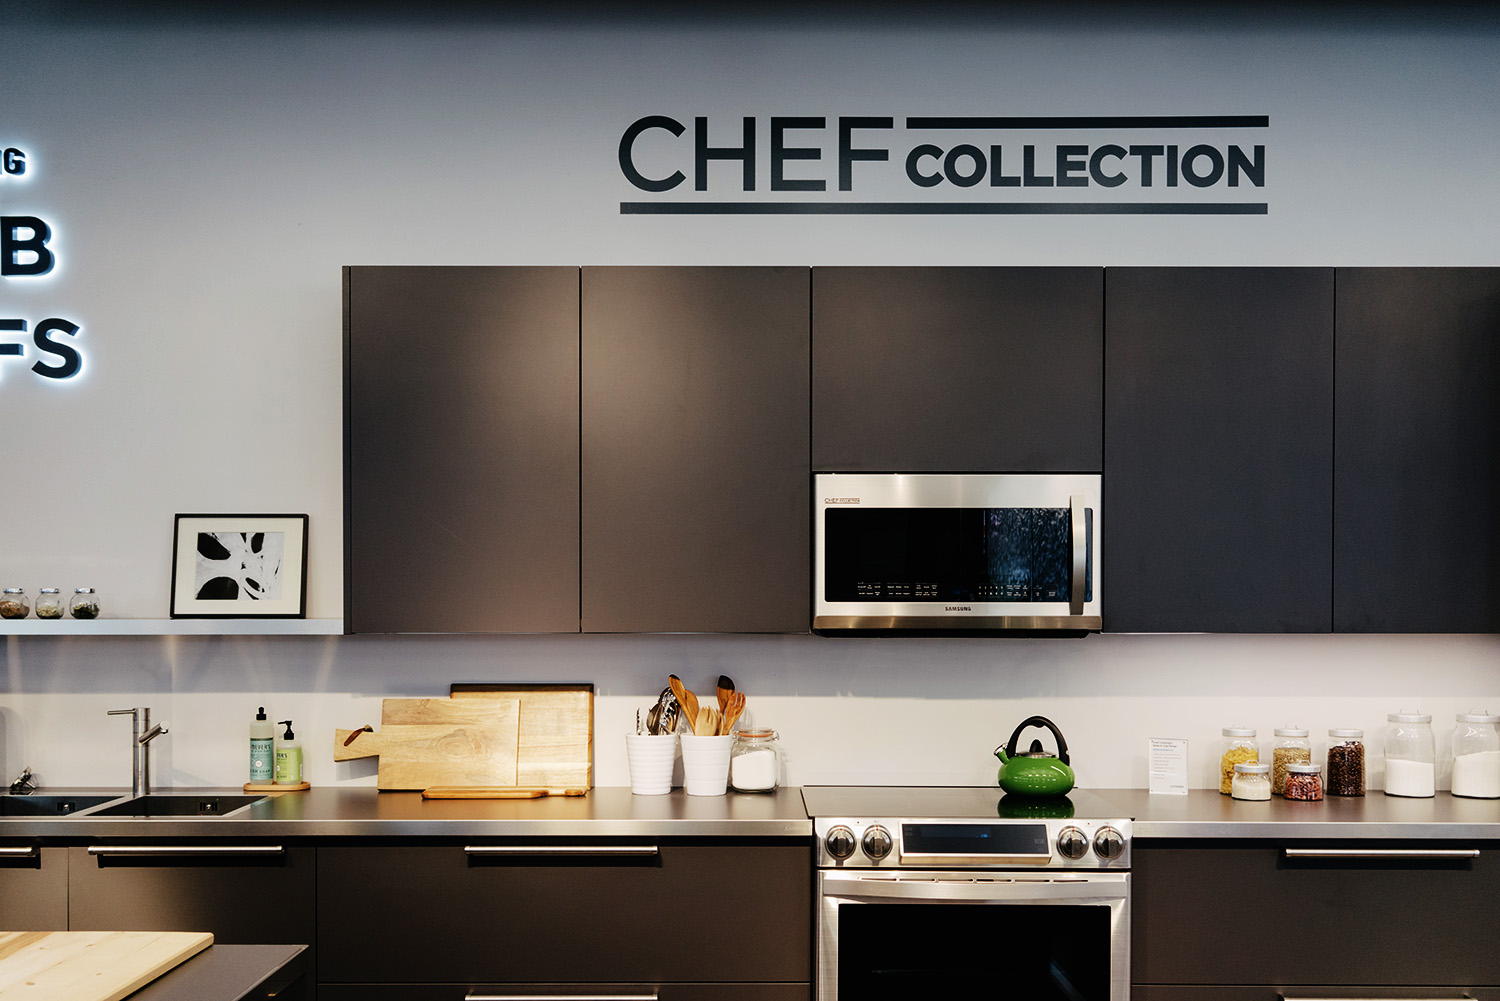 Chef Kitchen Lingered Upon Chef Collection By Samsung